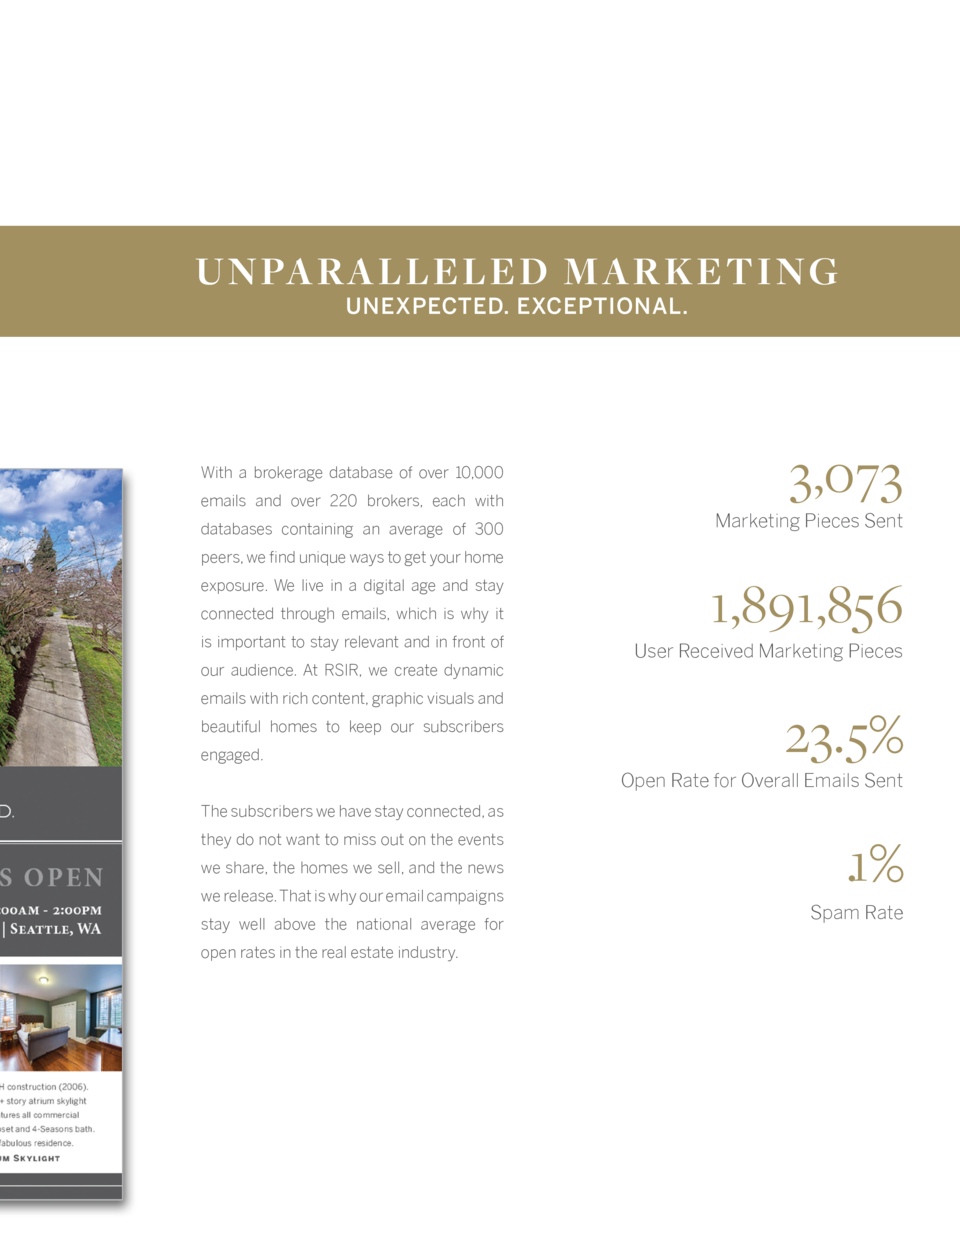 UNPARALLE LE D M AR KE TIN G UNEXPECTED. EXCEPTIONAL.  With a brokerage database of over 10,000 emails and over 220 broker...